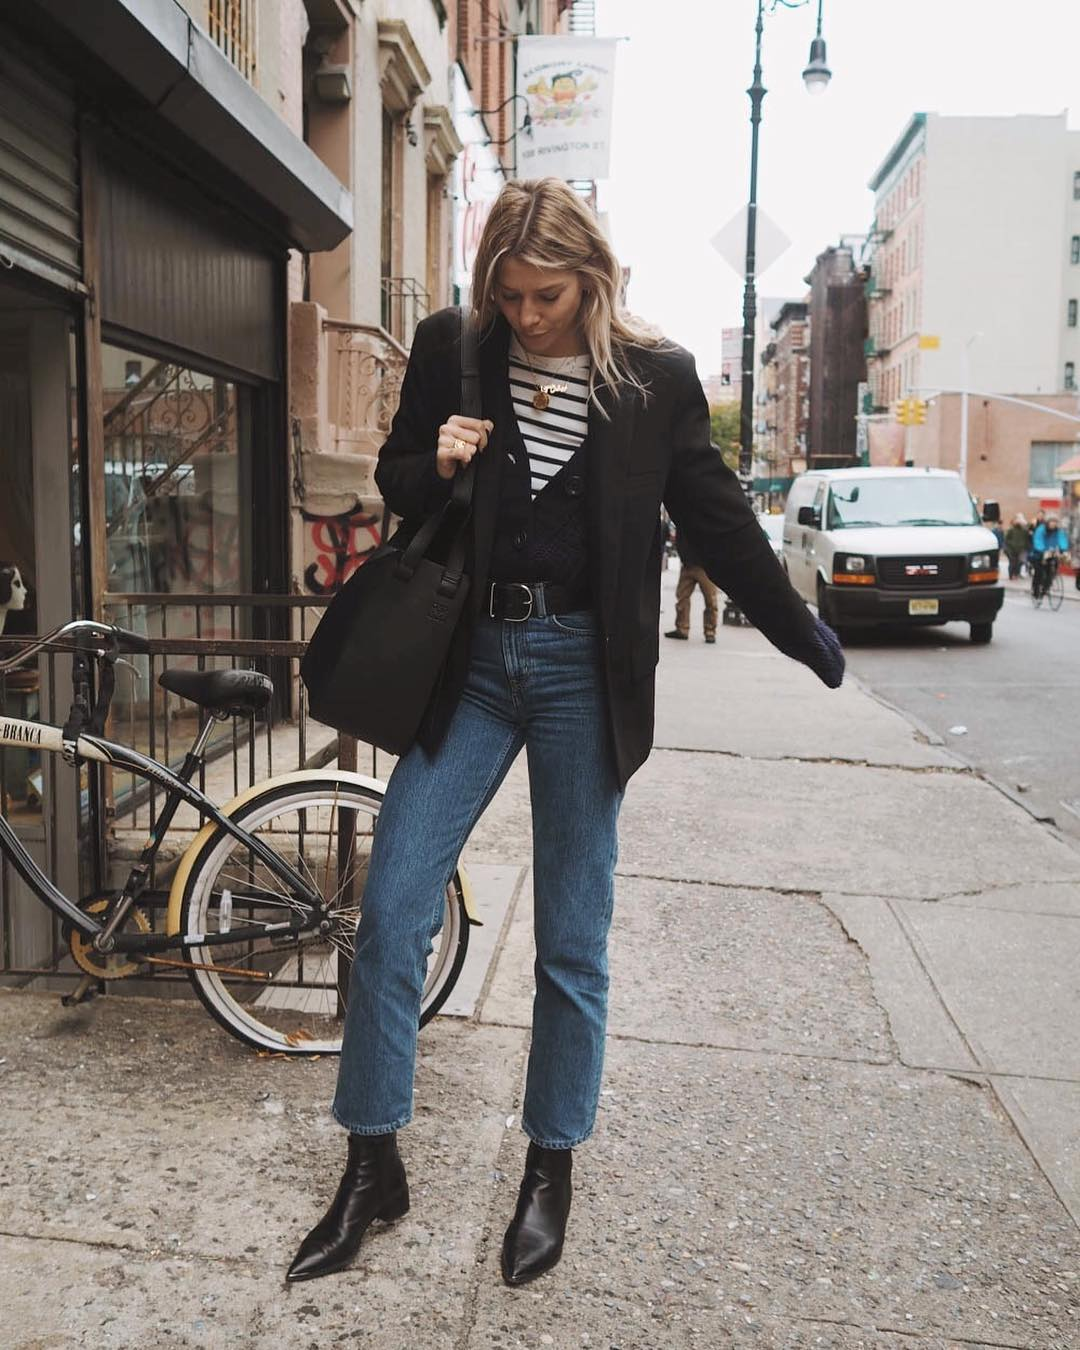 How to Master a Layered Fall Look Like a British Girl — Lindsey holland Instagram Style